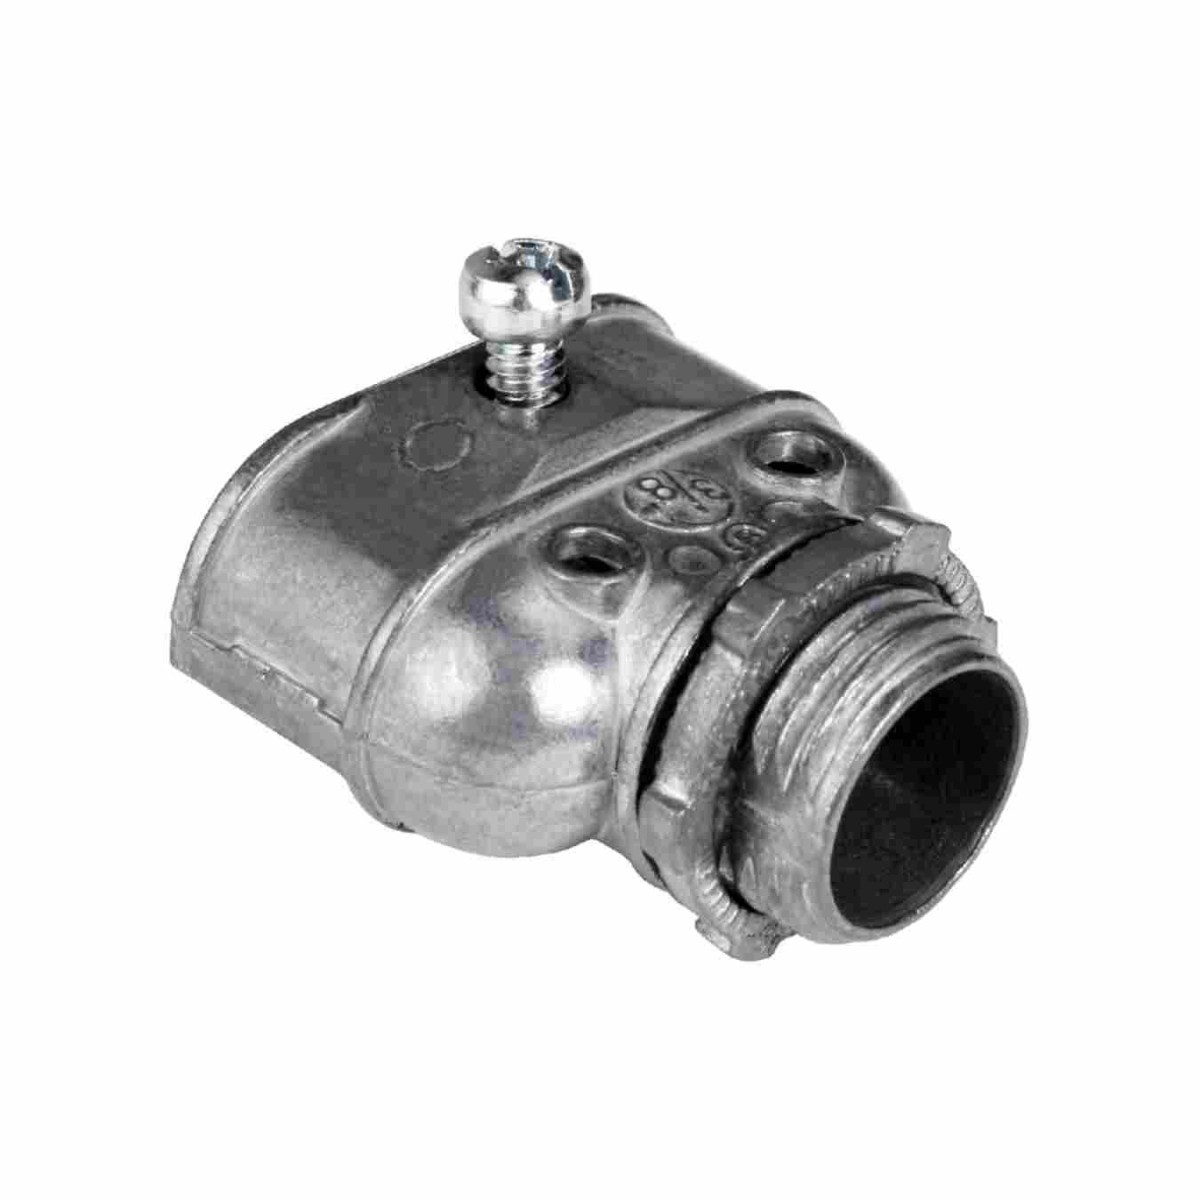 Duplex Ac Bx Flex Mc Connector Flex Ac Mc Fittings